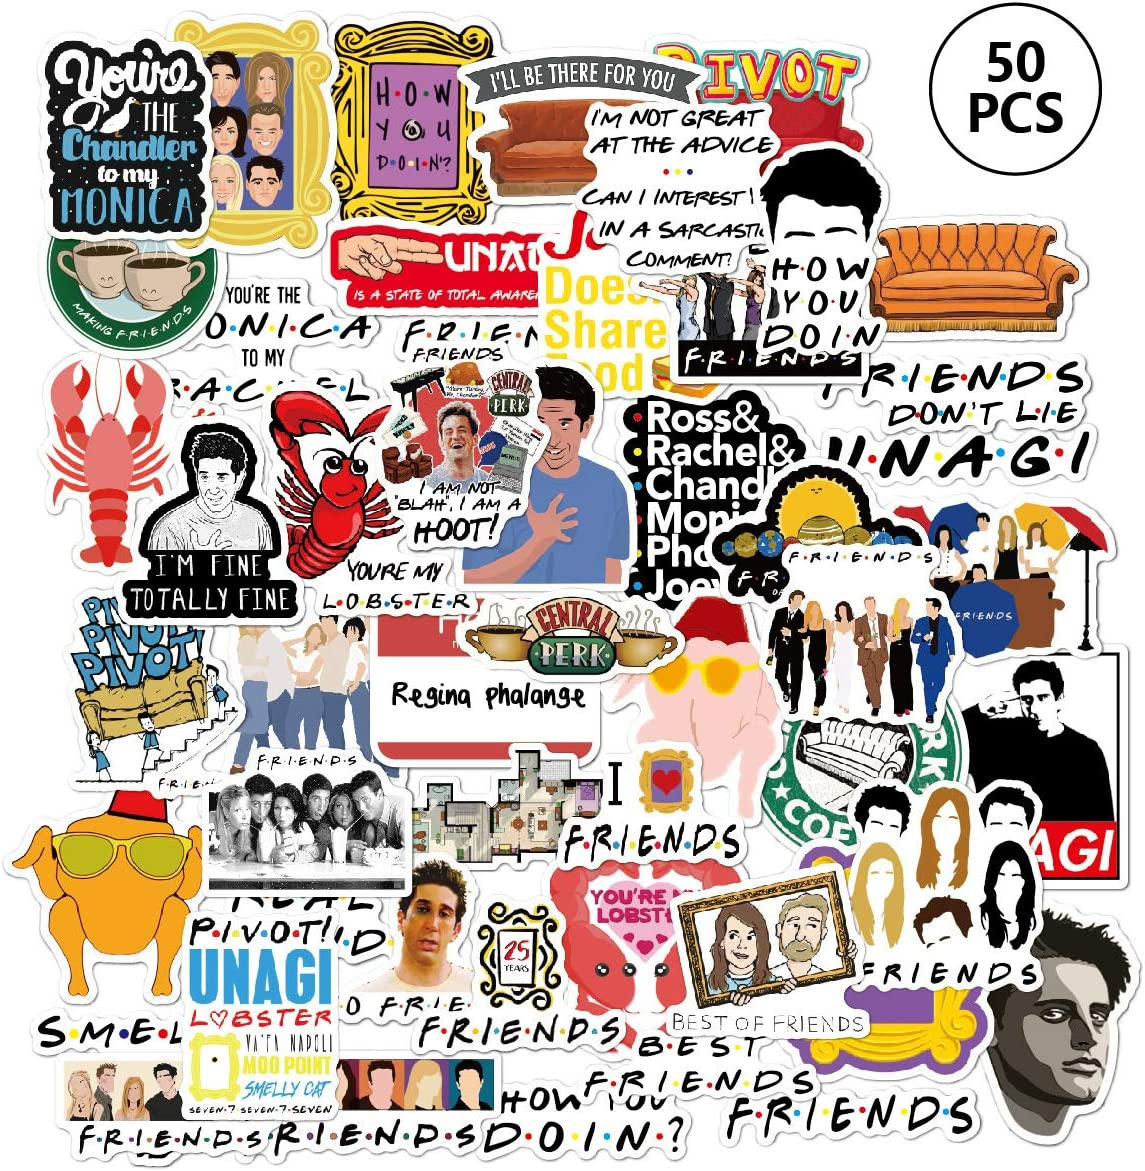 GINKO 50Pcs Outer Banks Friends Offices Vinyls Stickers Laptop Sticker Waterproof Stickers Luggage Skateboard Water Bottle Stickers Decal Bicycle Bumper Snowboard Decorate Gift for Kid Bigbang